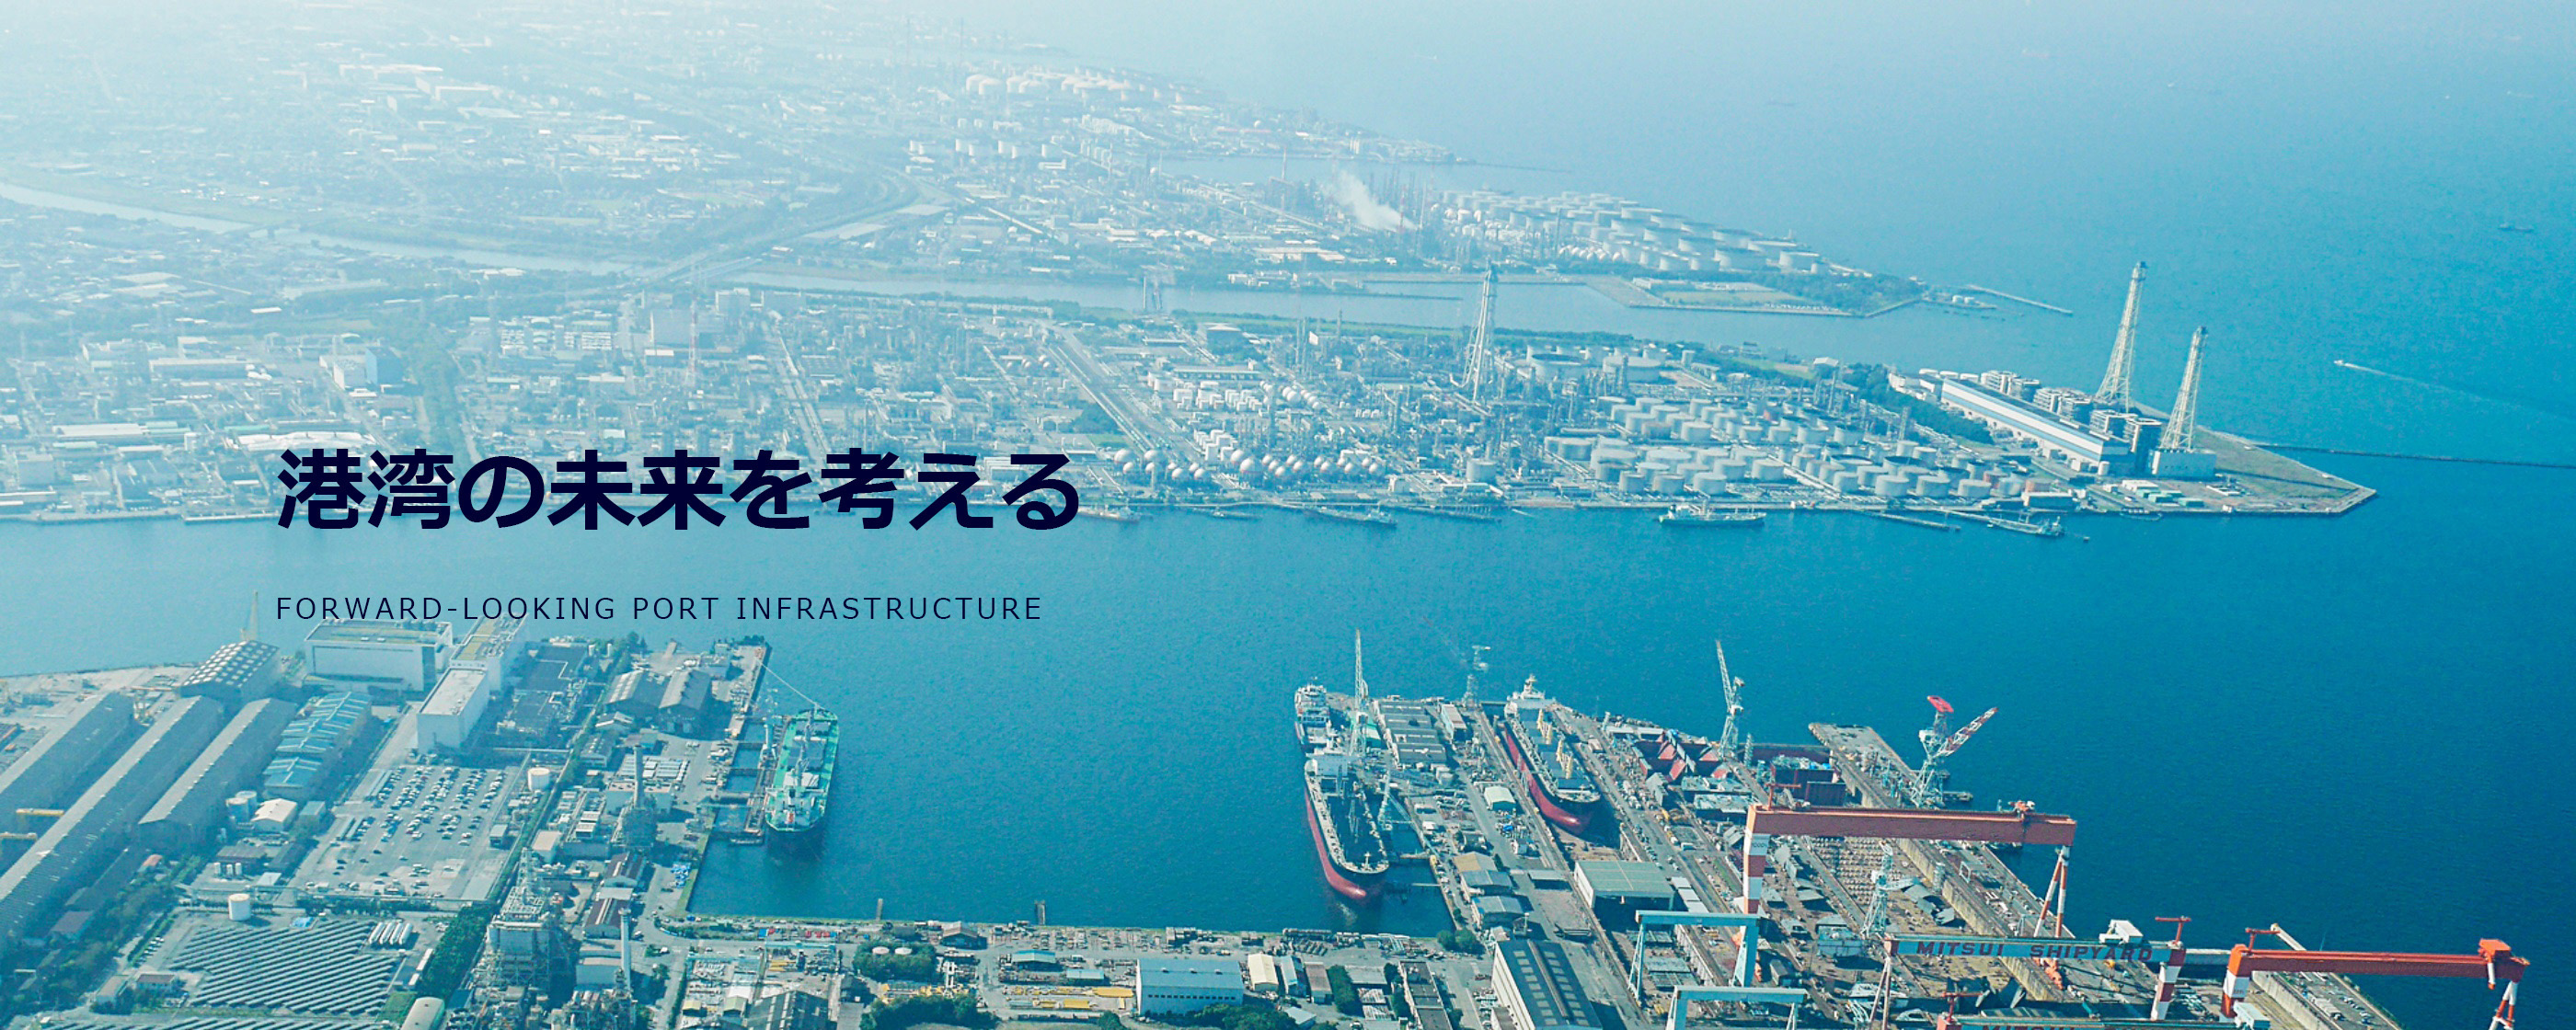 港湾の未来を考える FORWARD-LOOKING PORT INFRASTRUCTURE